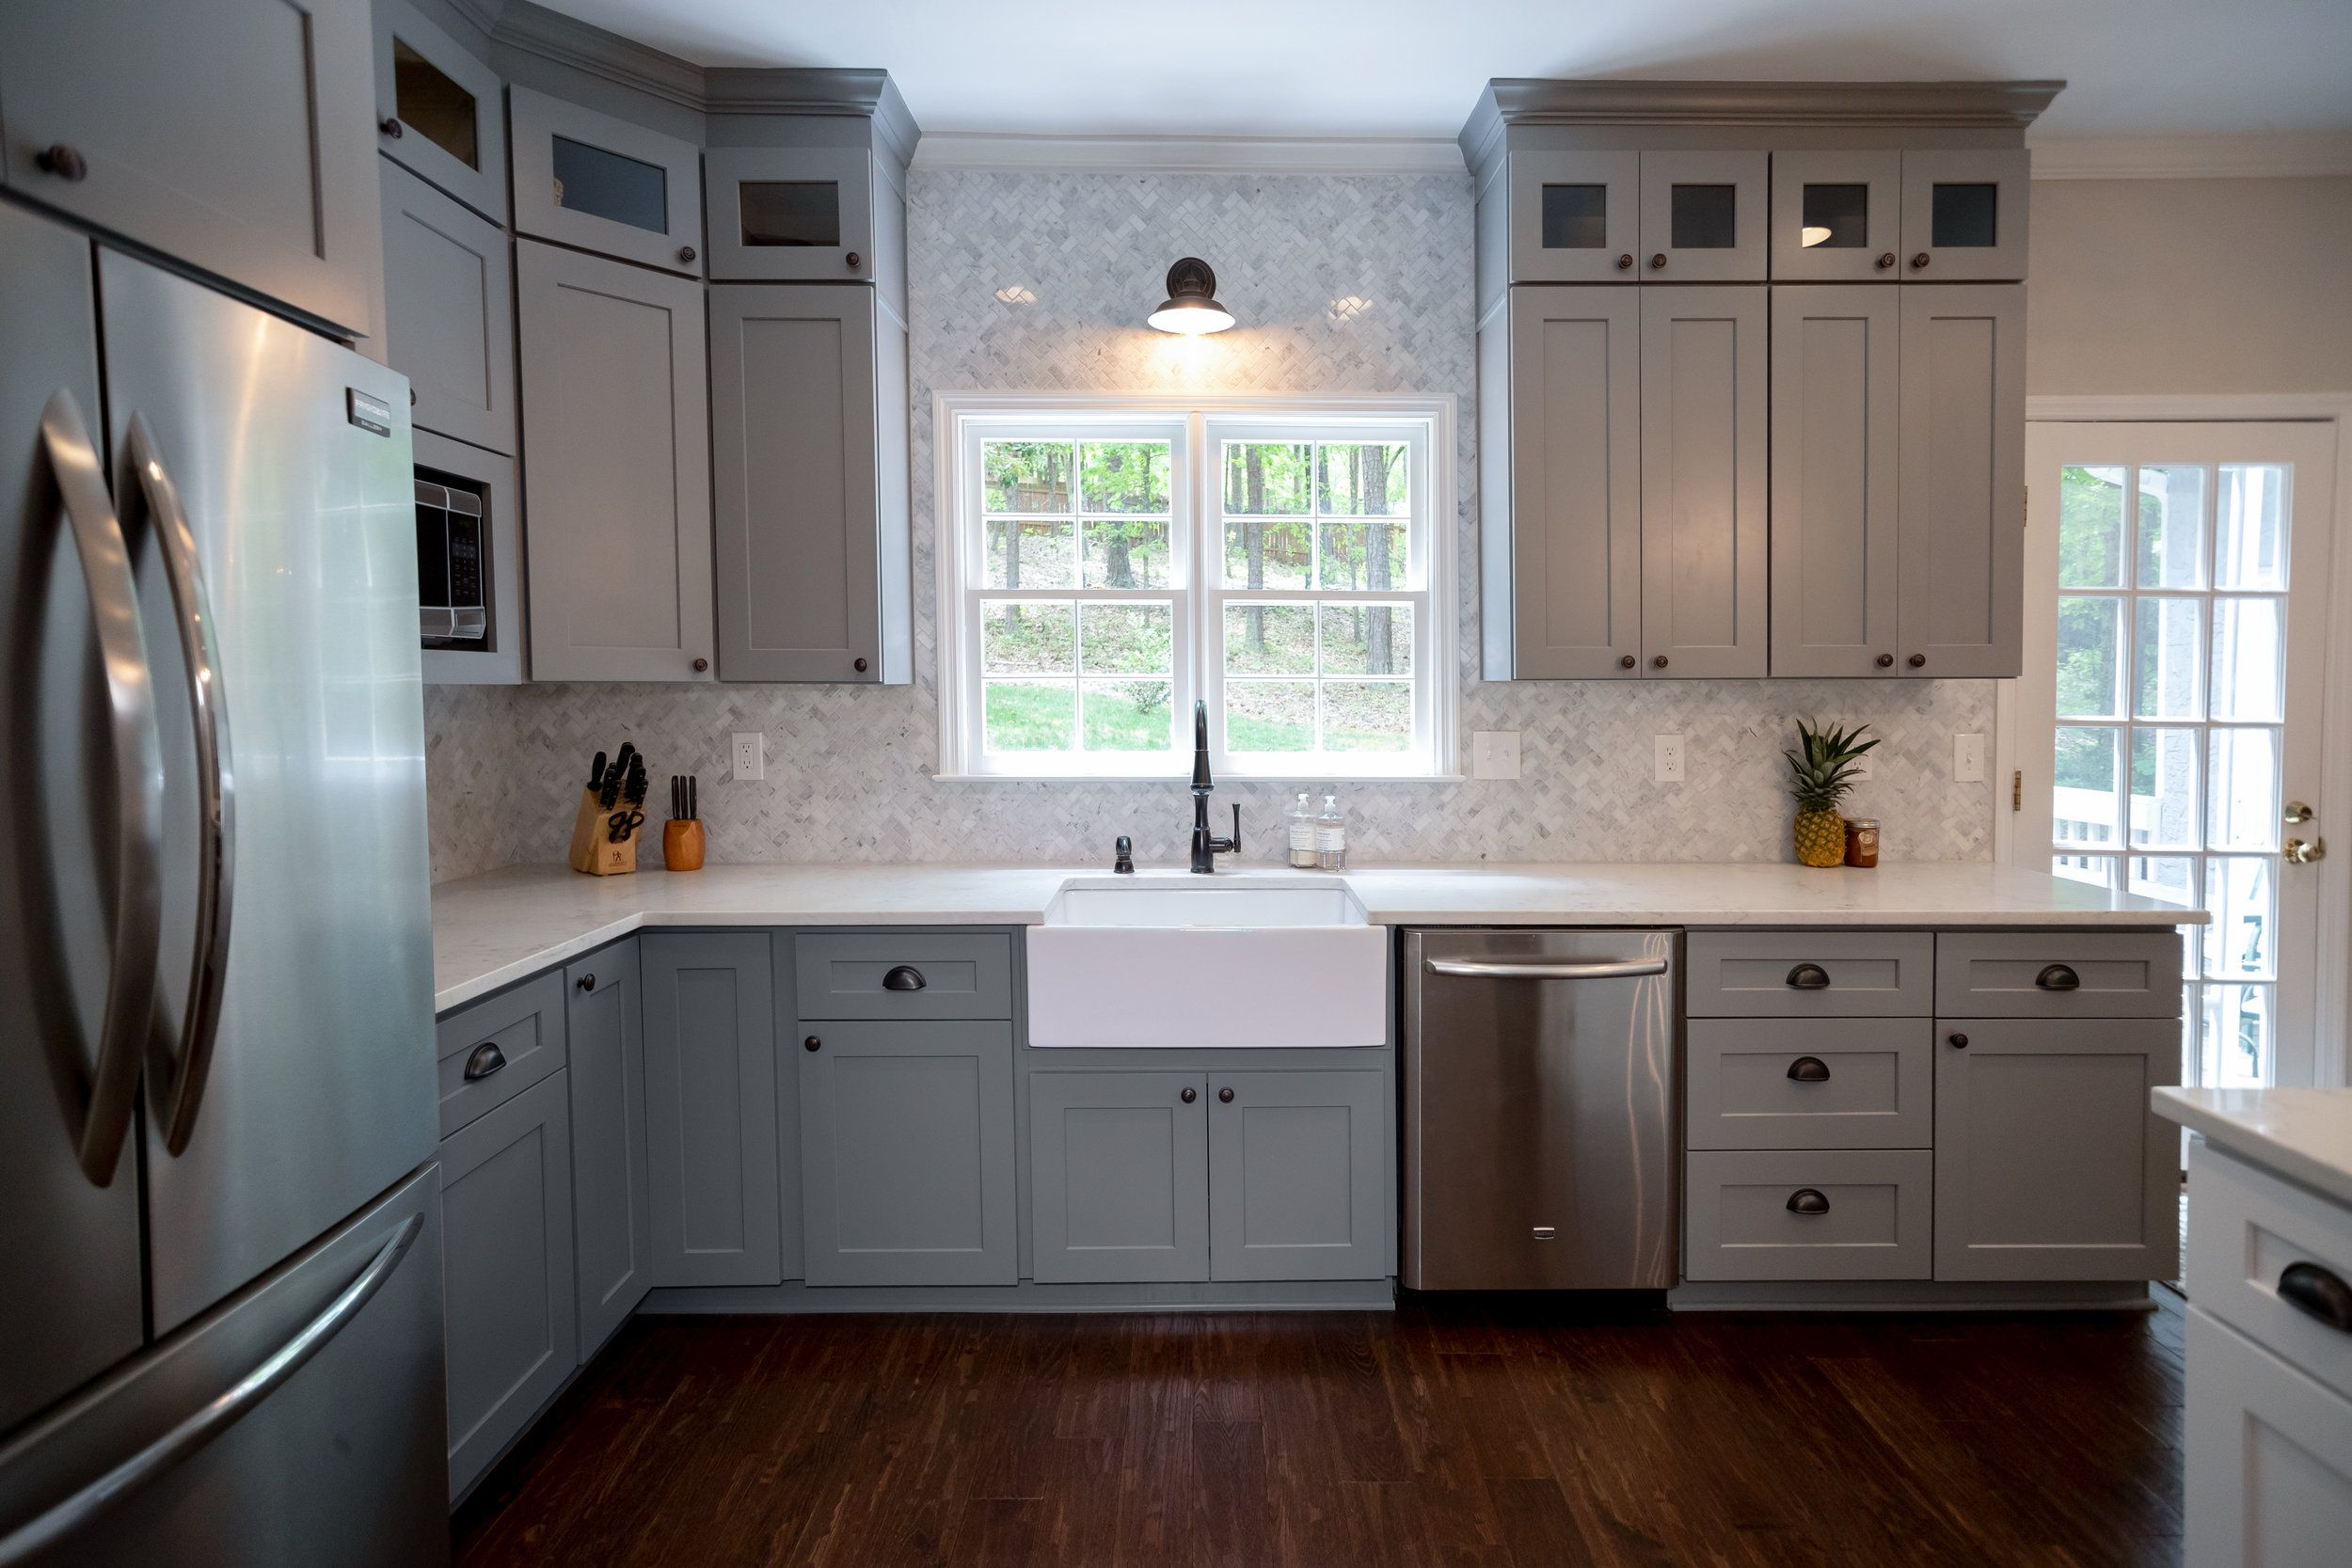 farmhouse kitchen farmhouse sink grey shaker cabinets small glass upper cabinets on top of on farmhouse kitchen grey cabinets id=85768